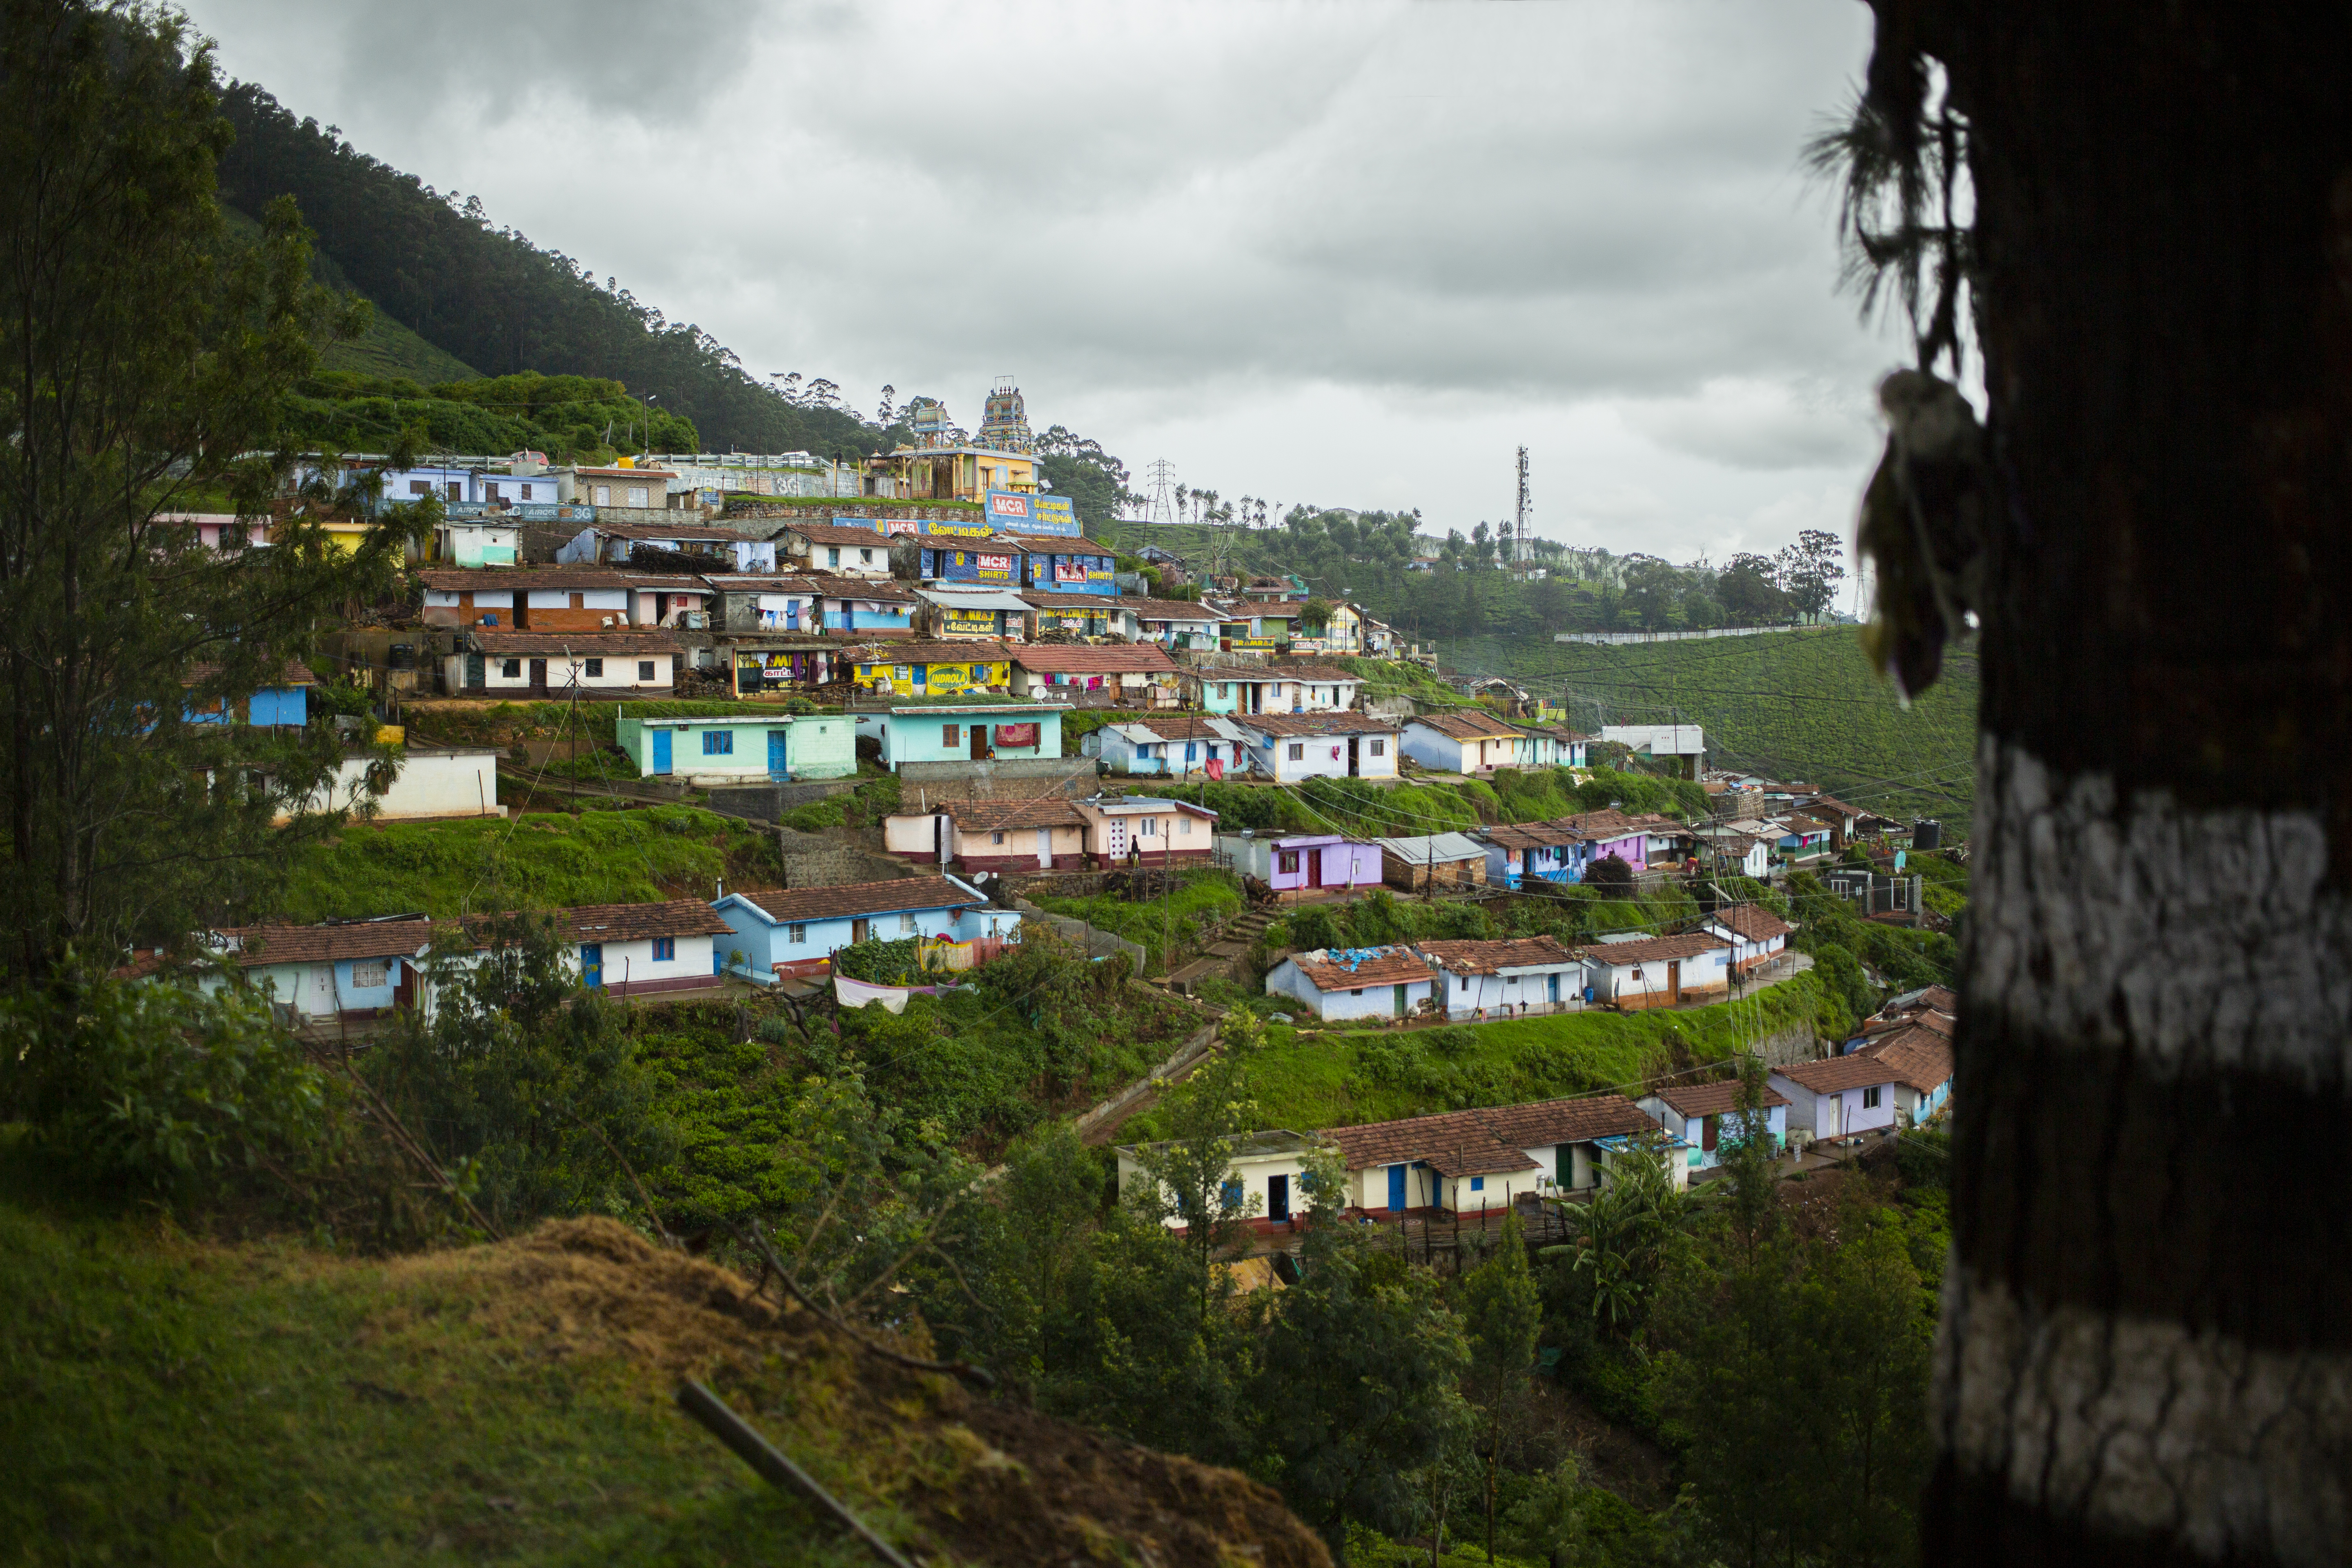 homes in a mountainside